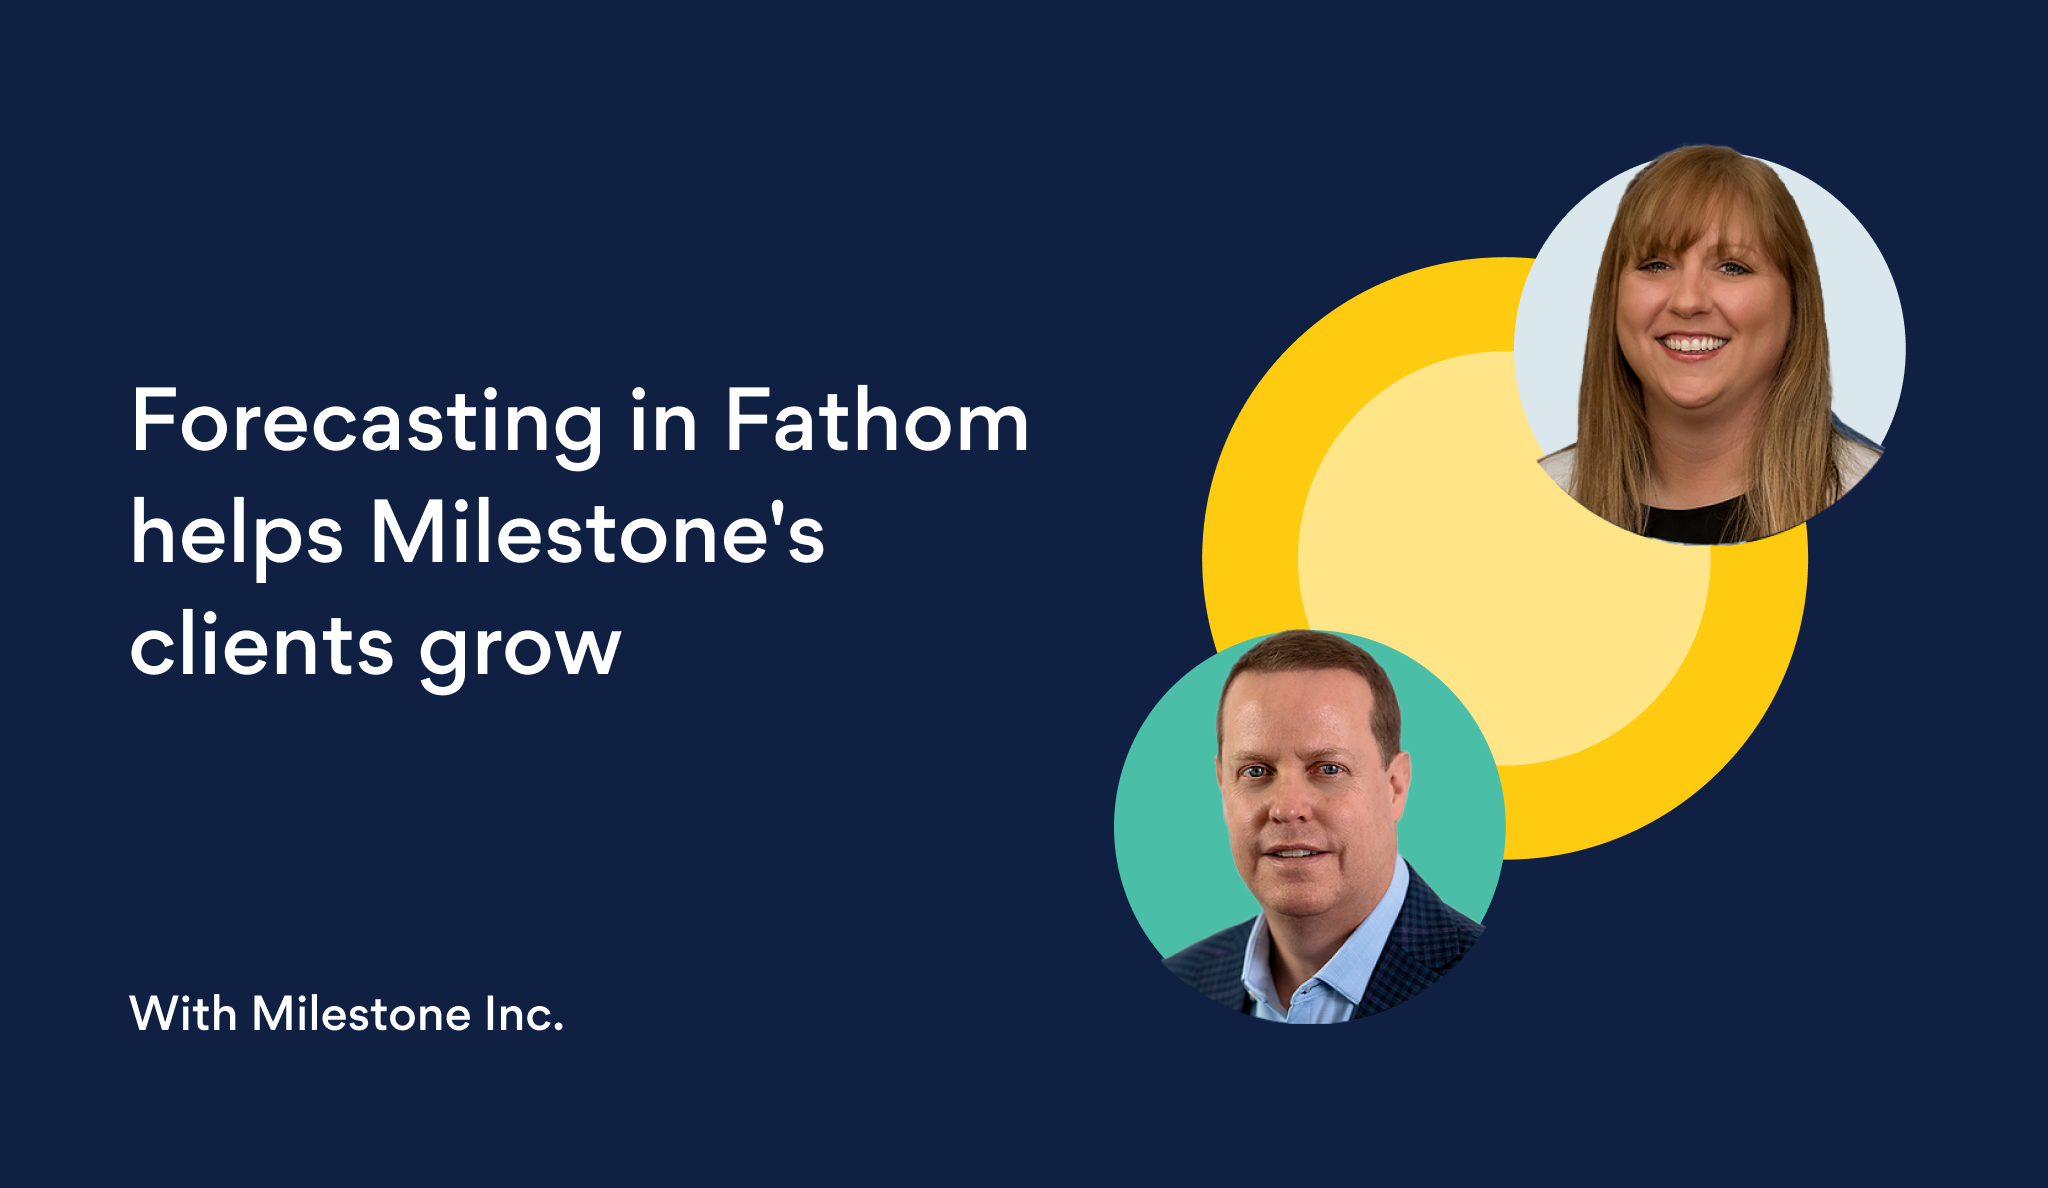 Forecasting in Fathom helps Milestone's clients grow